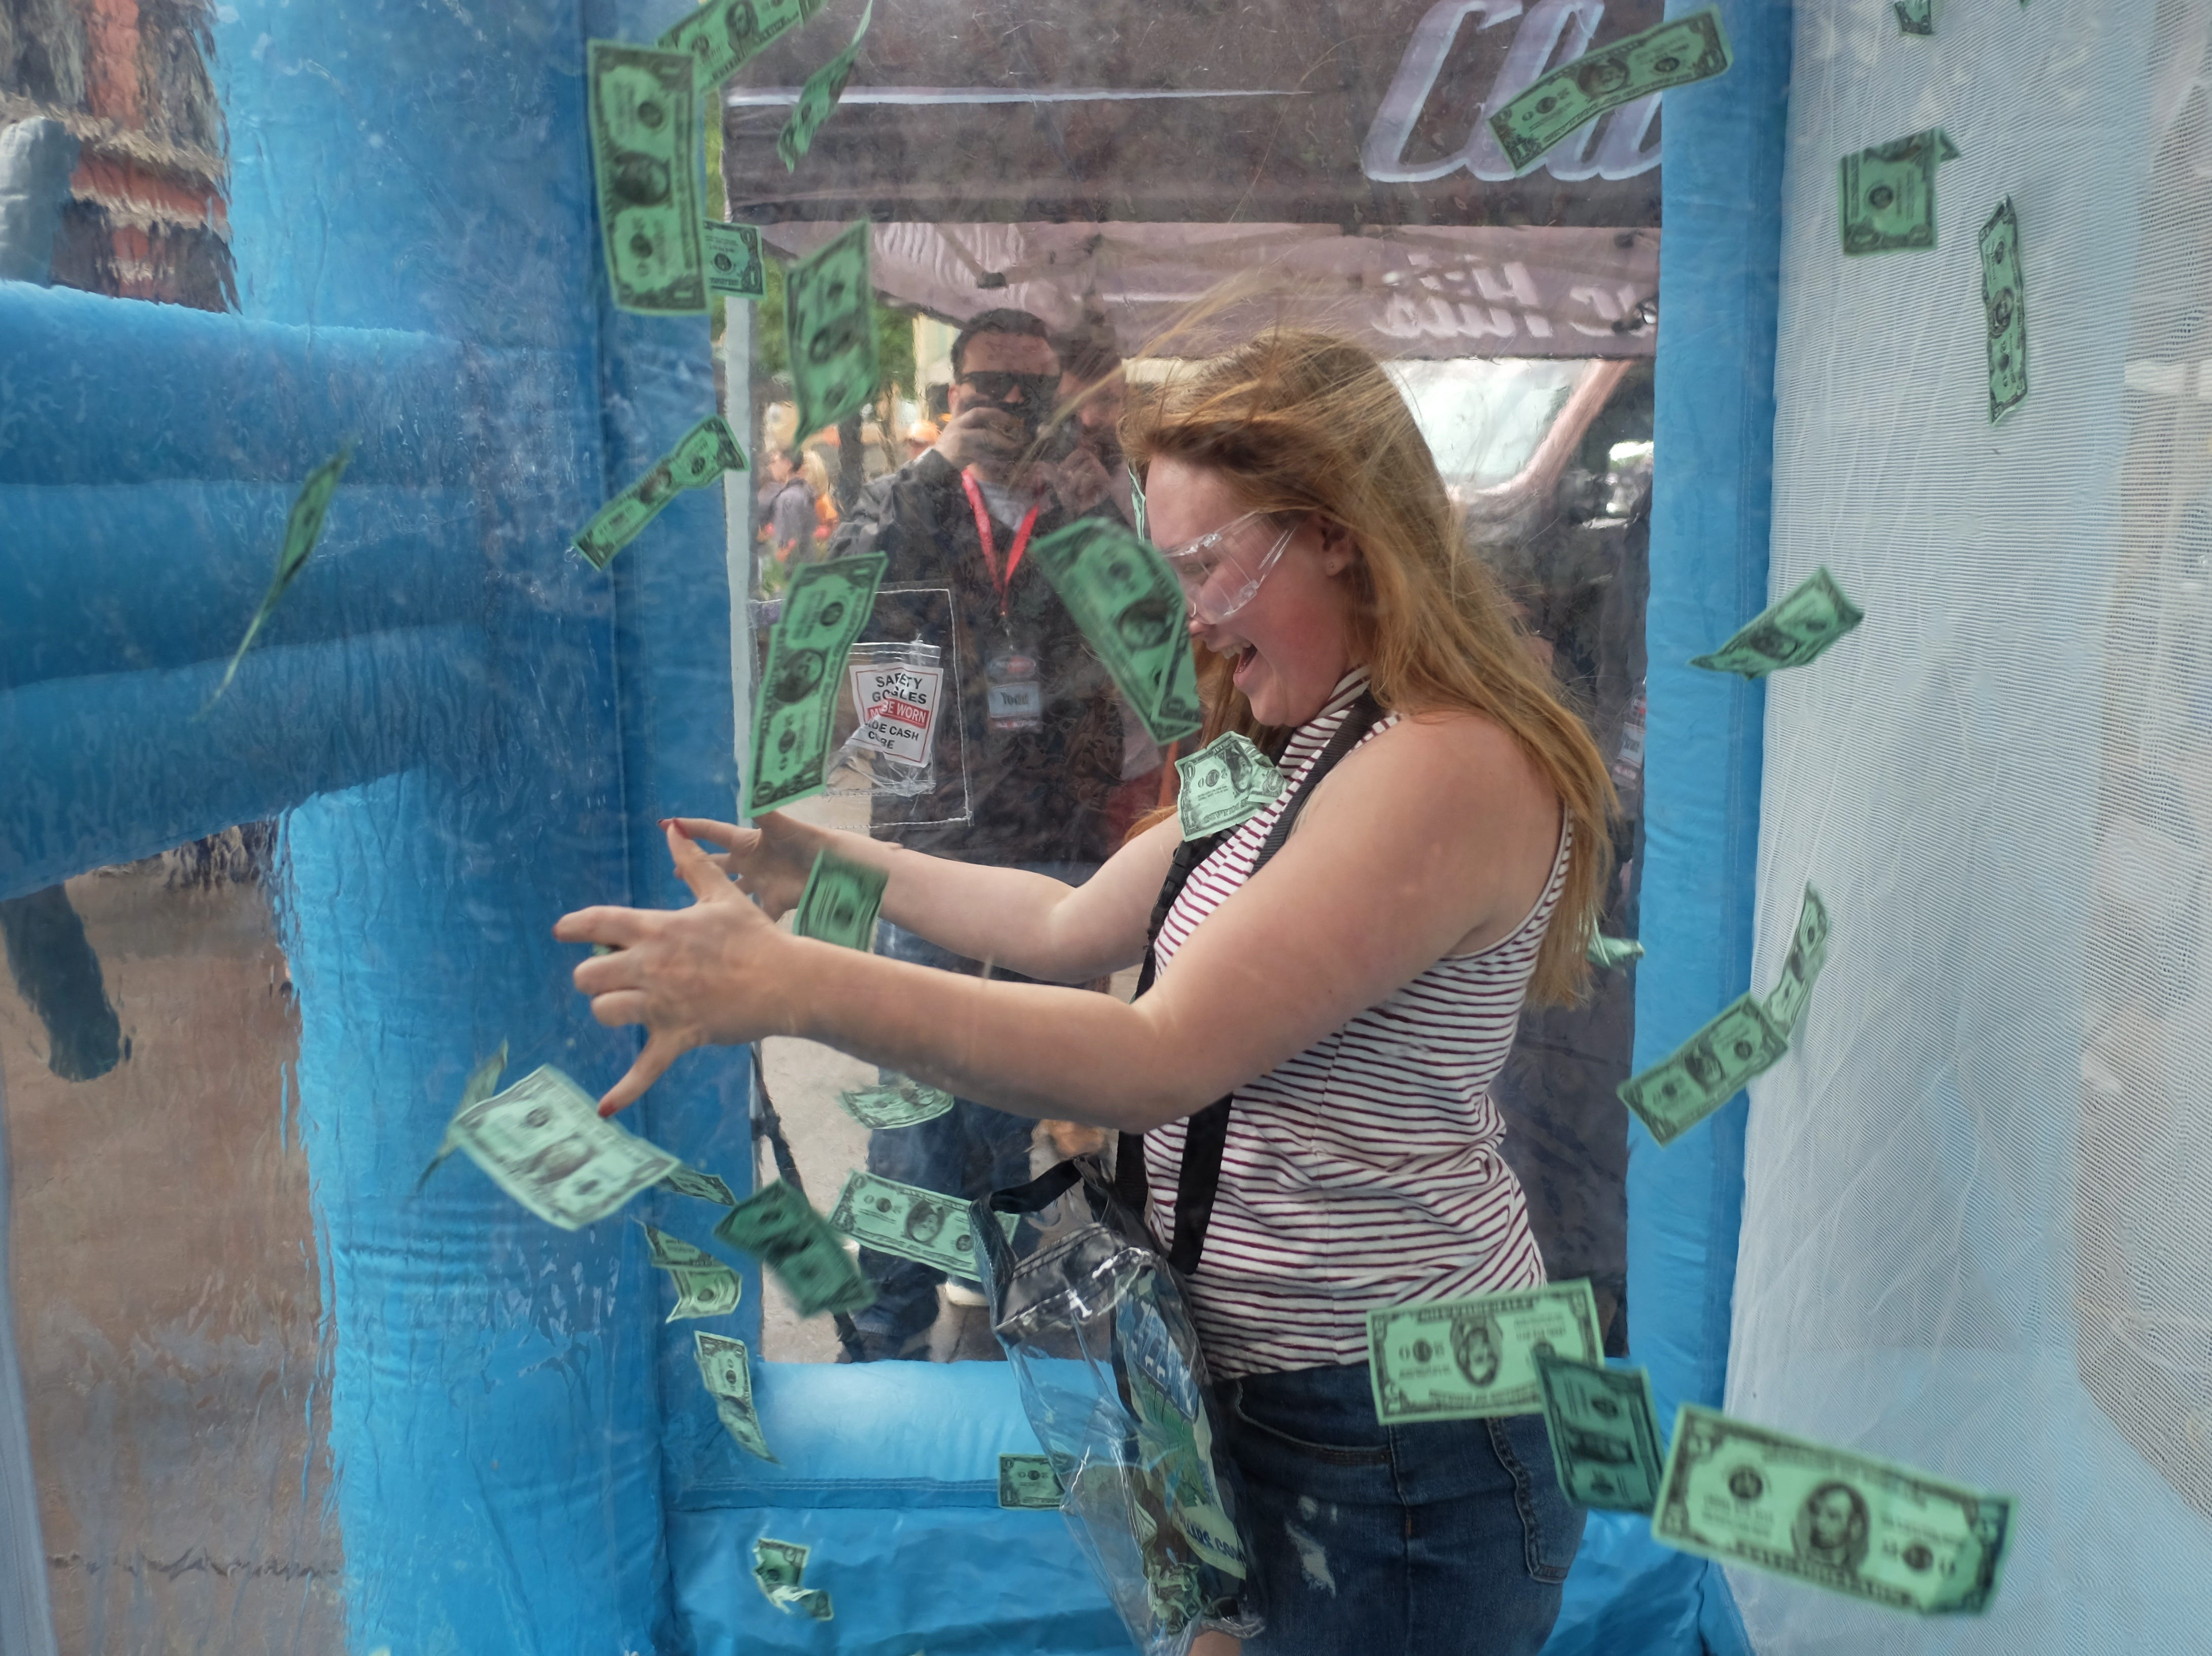 Seirra Trott tries to capture money during the Rossini Festival in Knoxville on Saturday, April 13, 2019. (Shawn Millsaps/Special to News Sentinel)